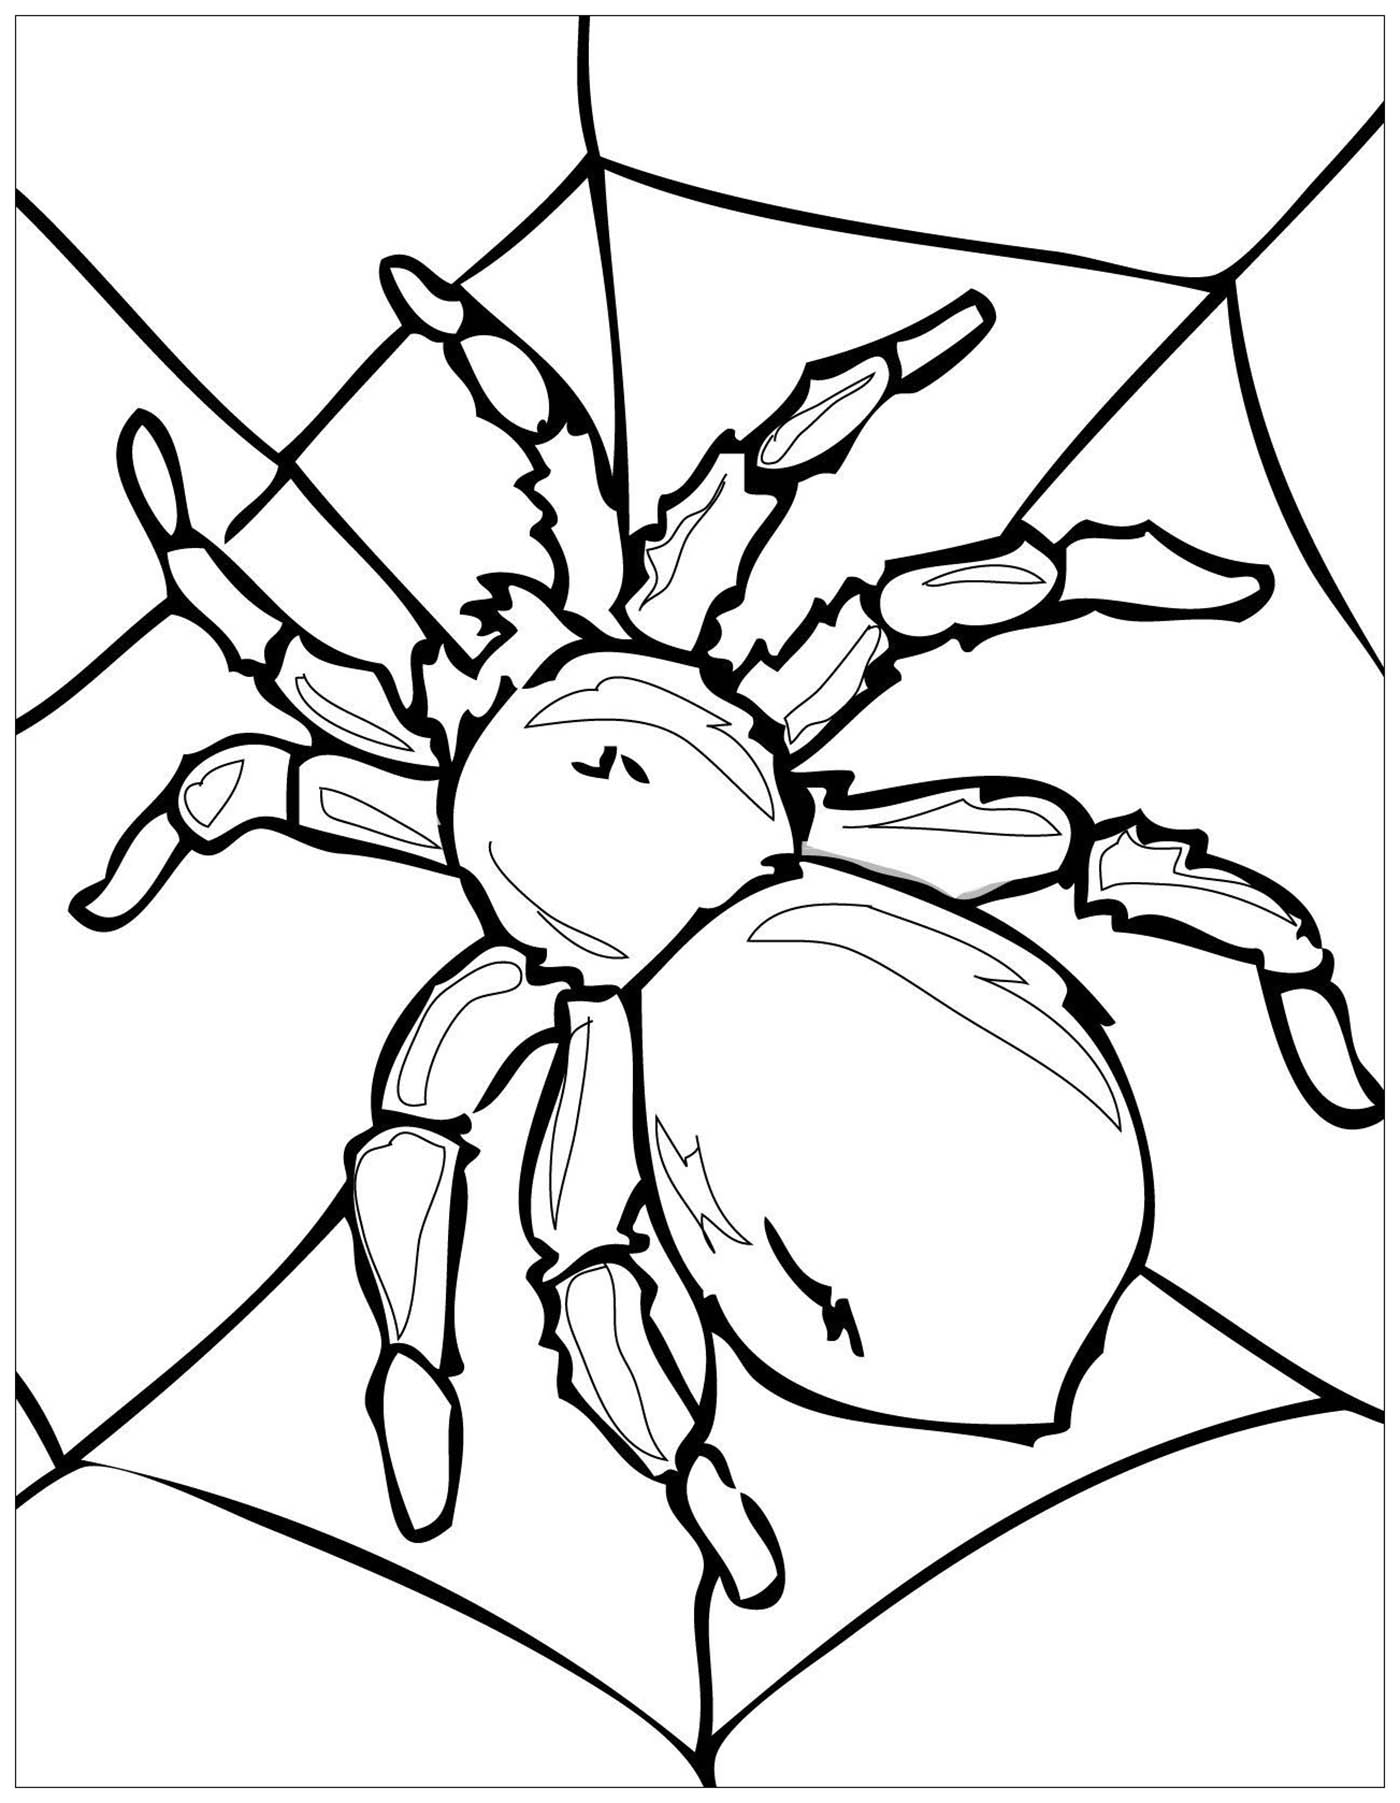 insect coloring sheets bug coloring pages kidsuki sheets insect coloring